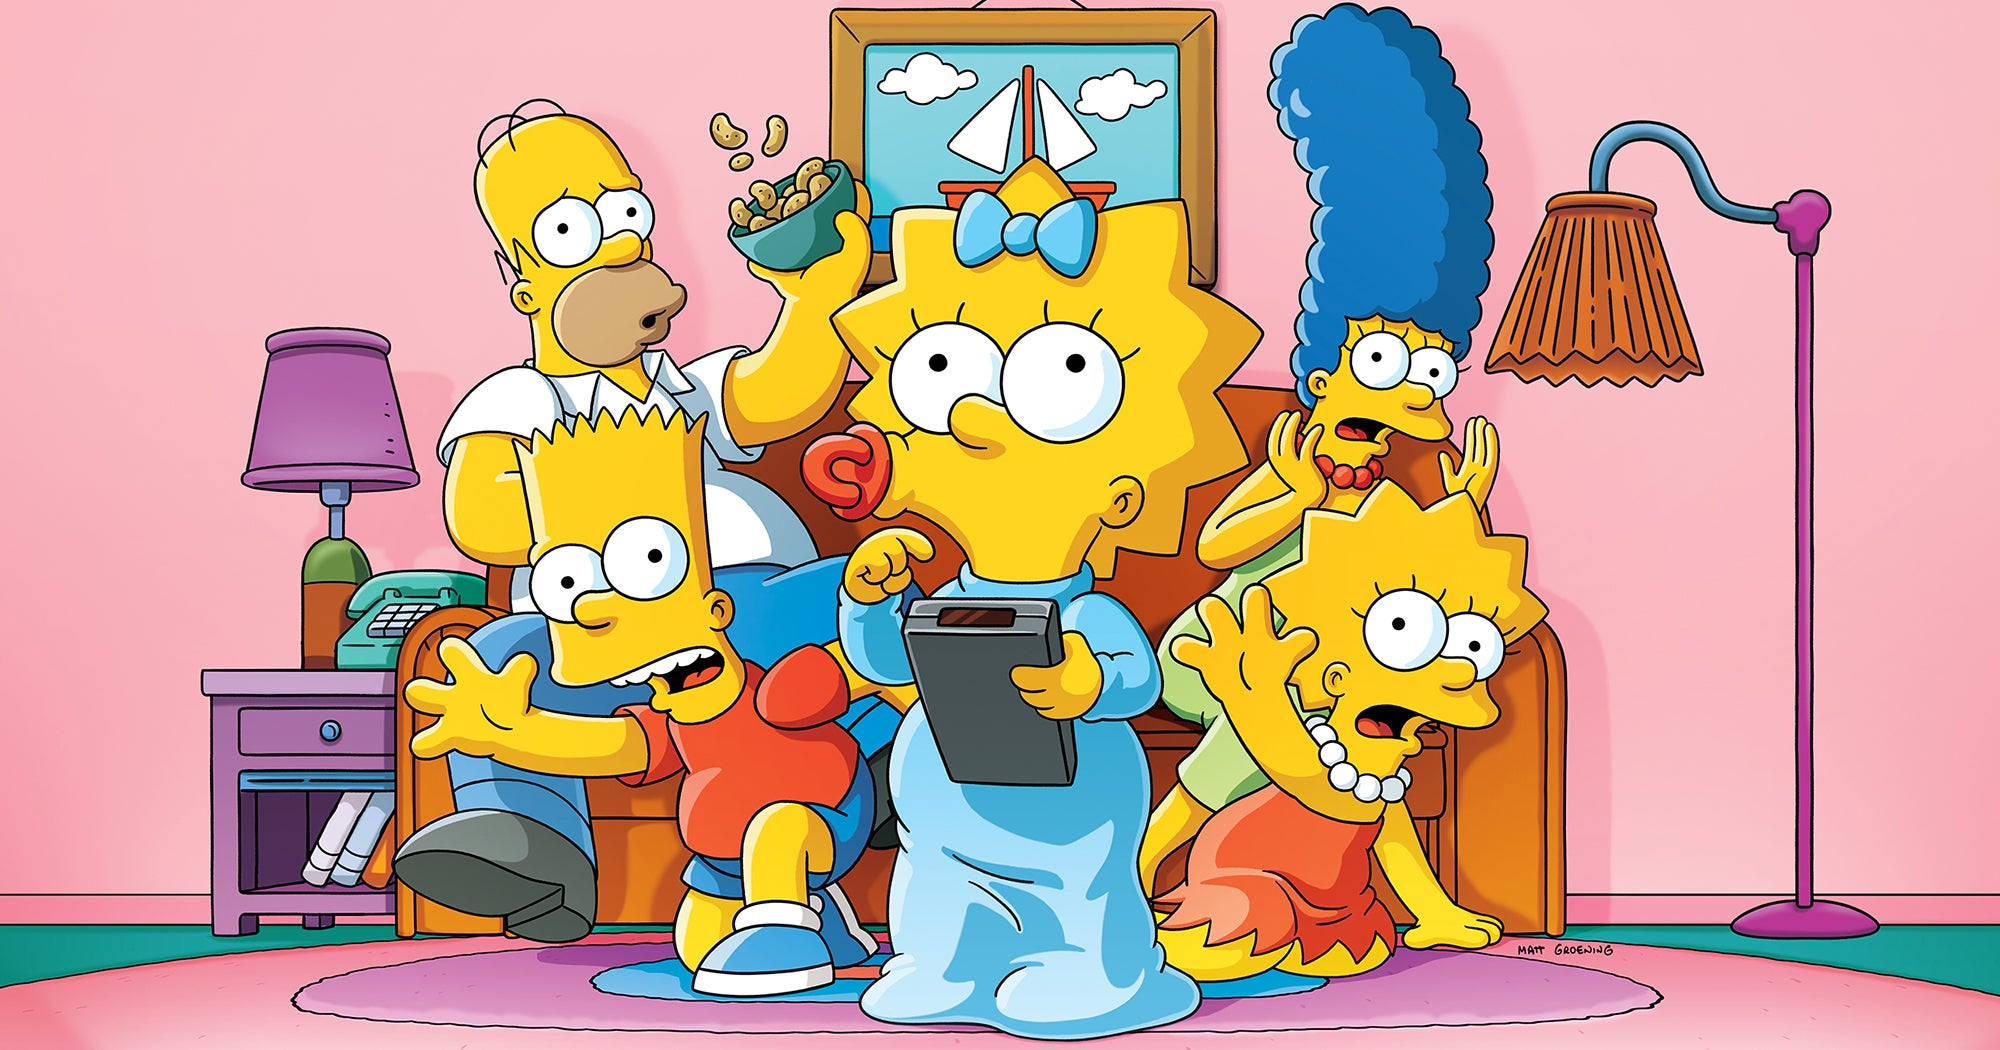 Disney Is Fixing The Simpsons After Aspect Ratio Crop